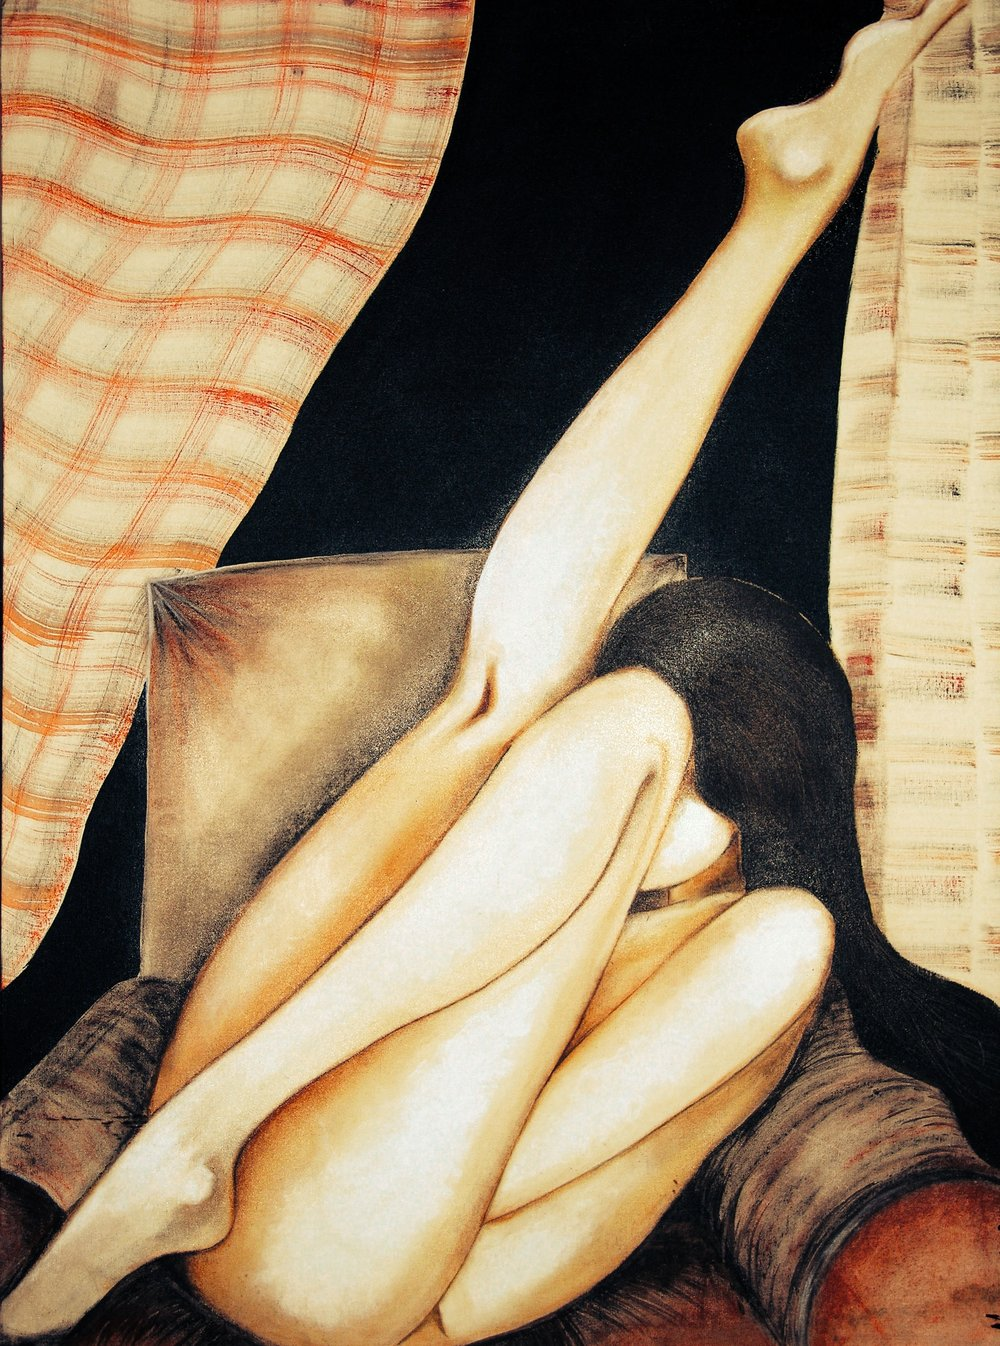 2009, dry pastels on board | 48'x 60' | AVAILABLE